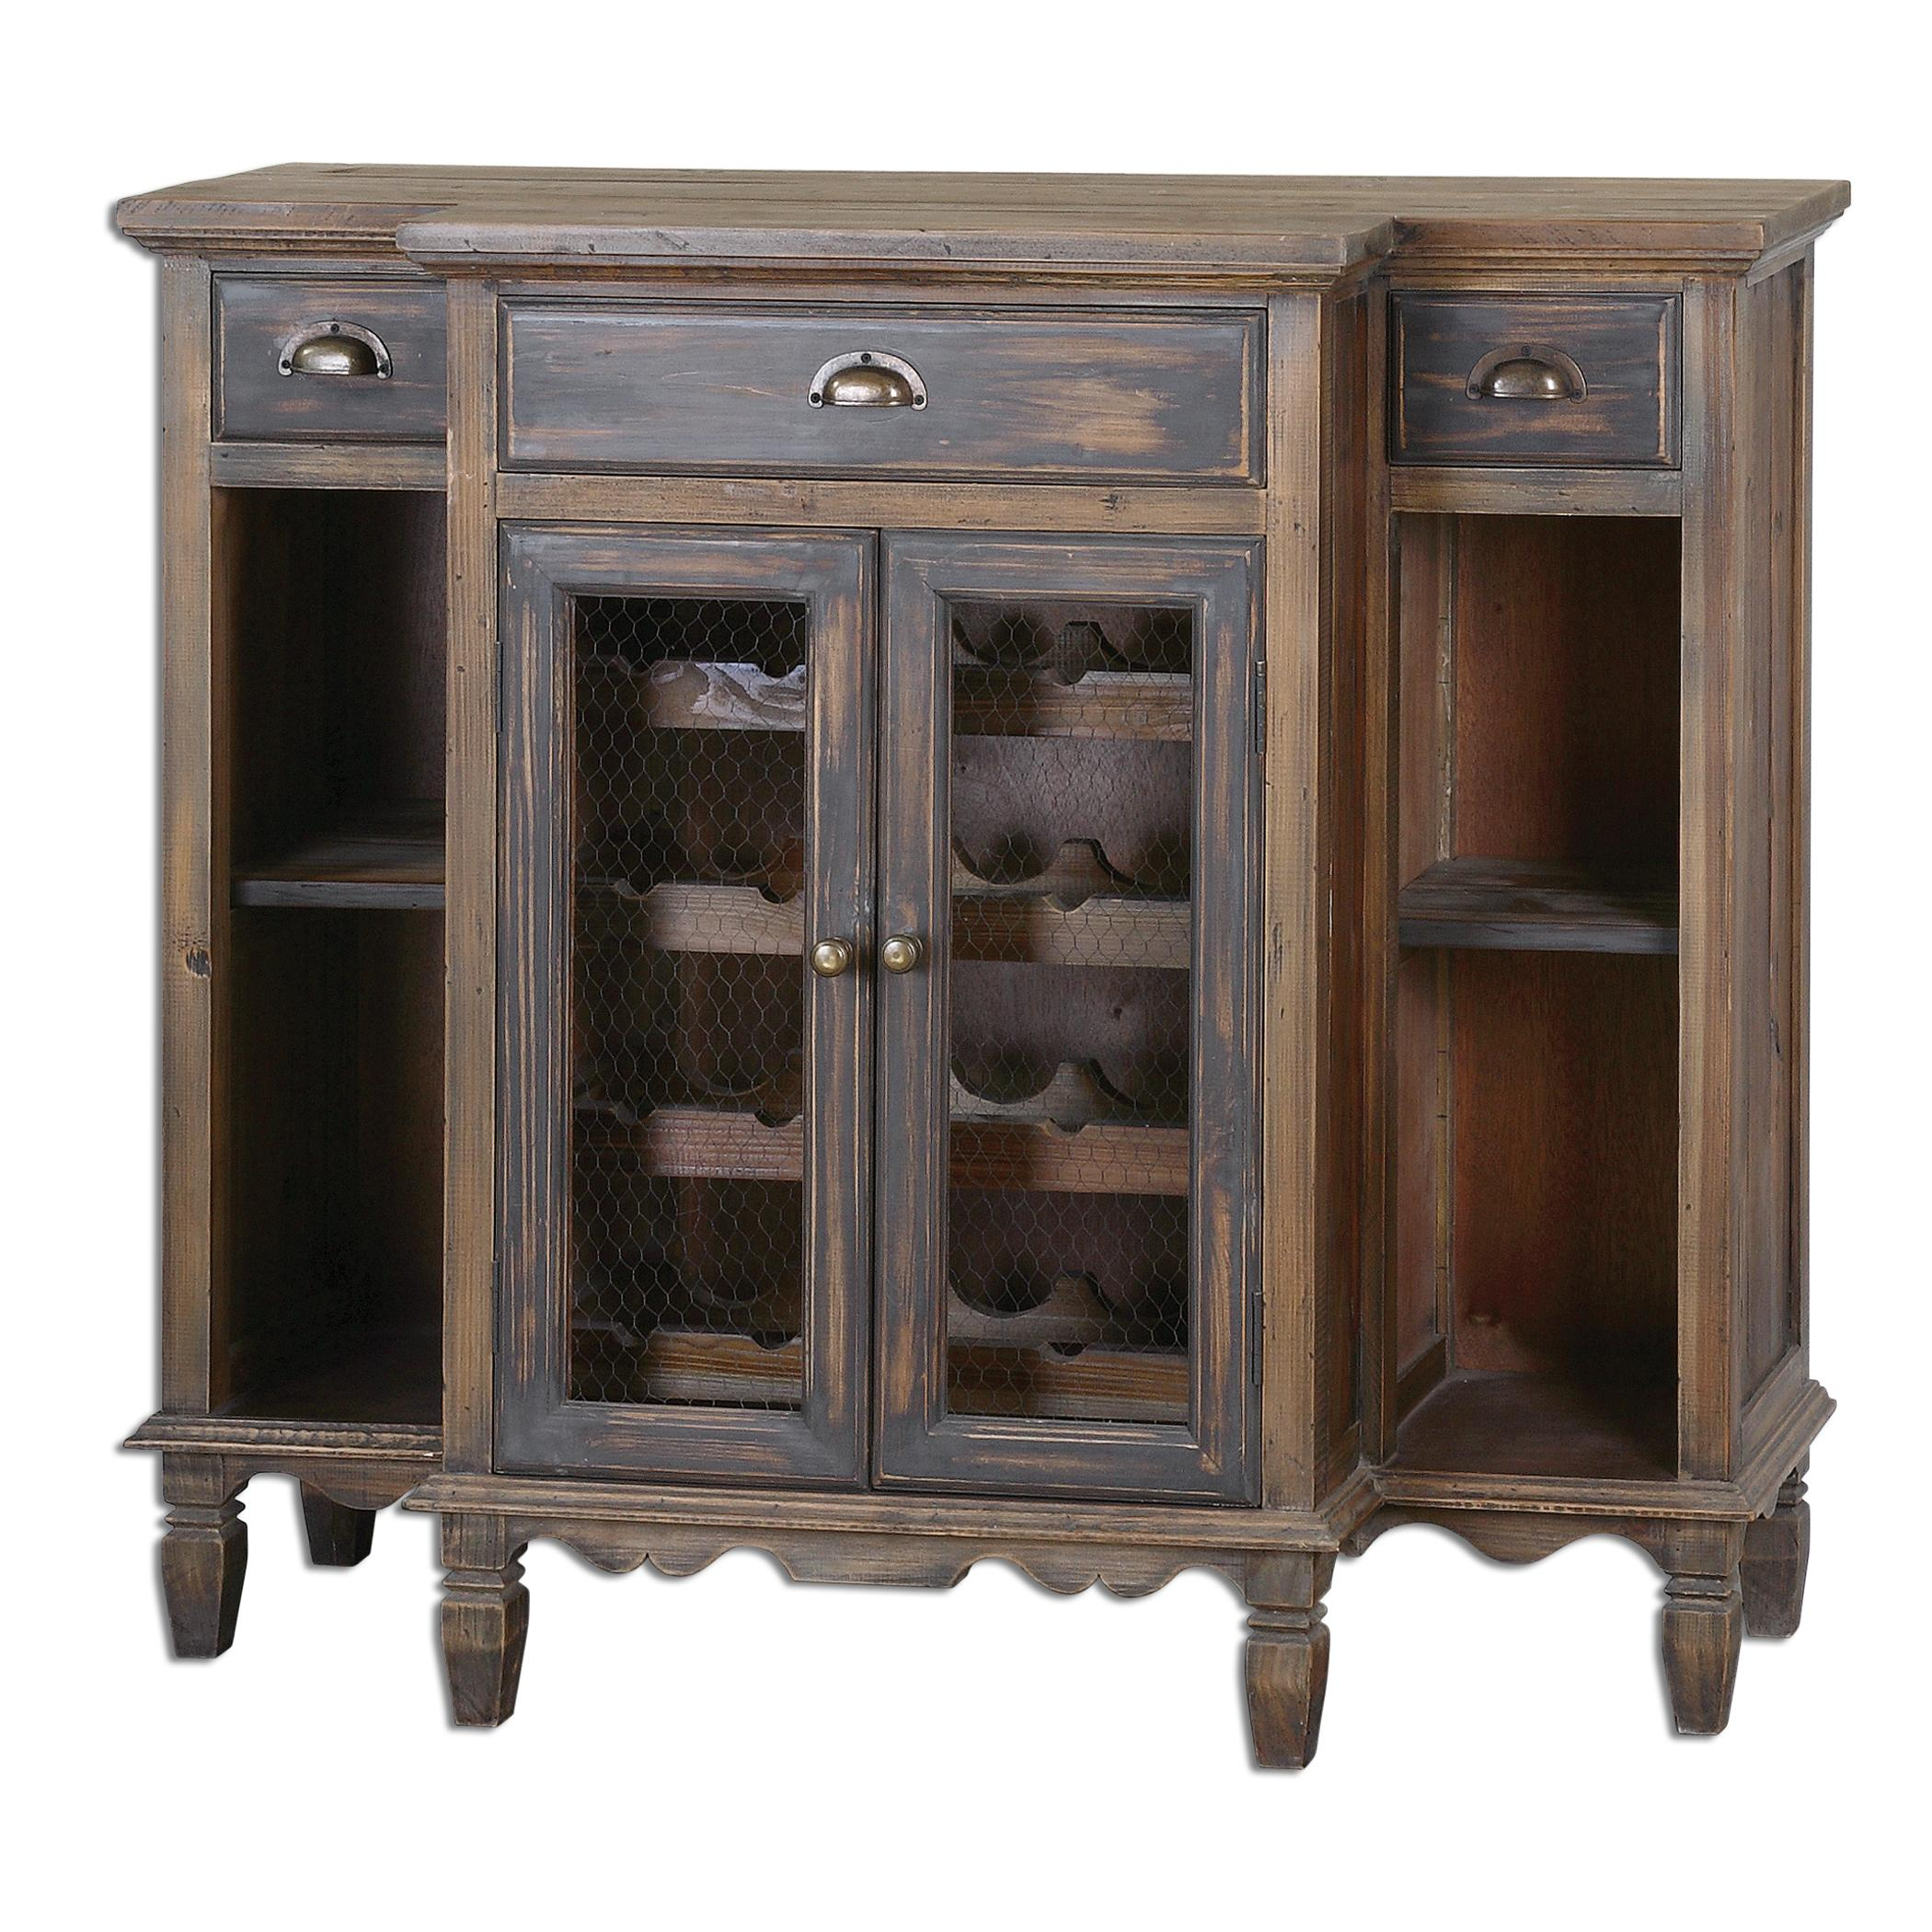 Uttermost Accent Furniture Suzette Wood Wine Cabinet - Item Number: 24371